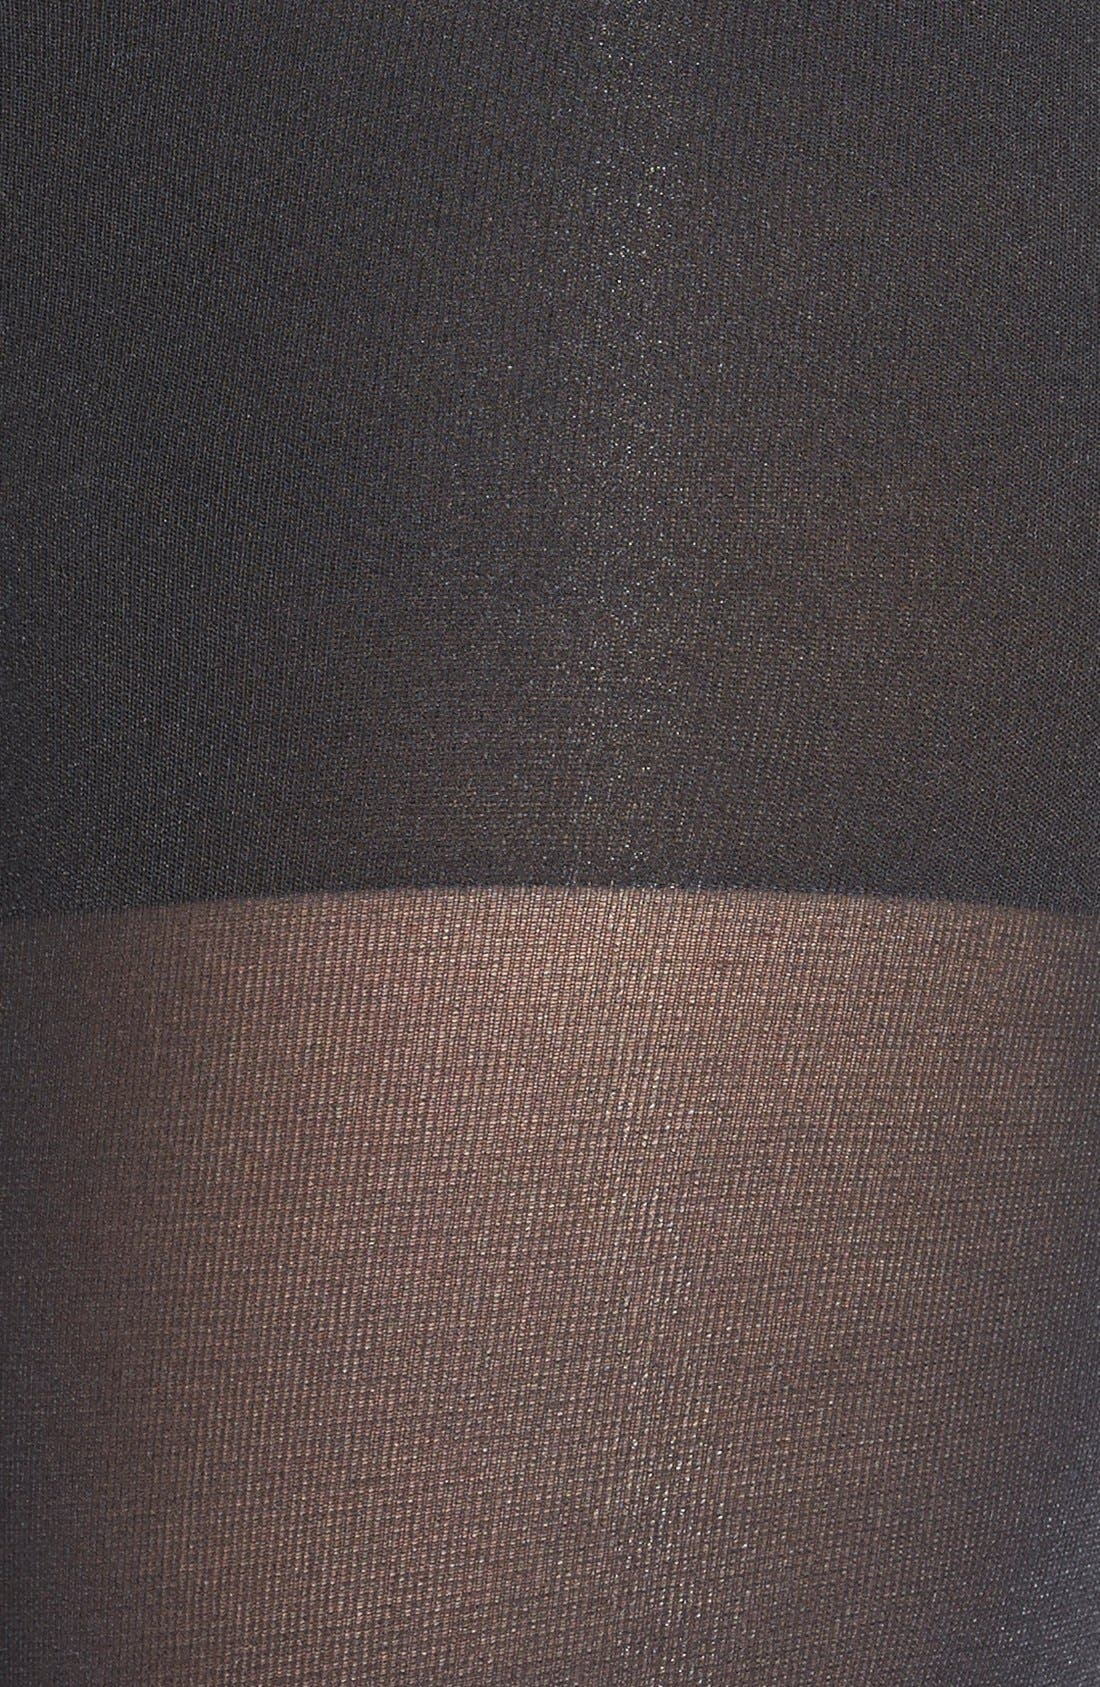 'Luxe' Leg Shaping Tights,                             Alternate thumbnail 2, color,                             Very Black